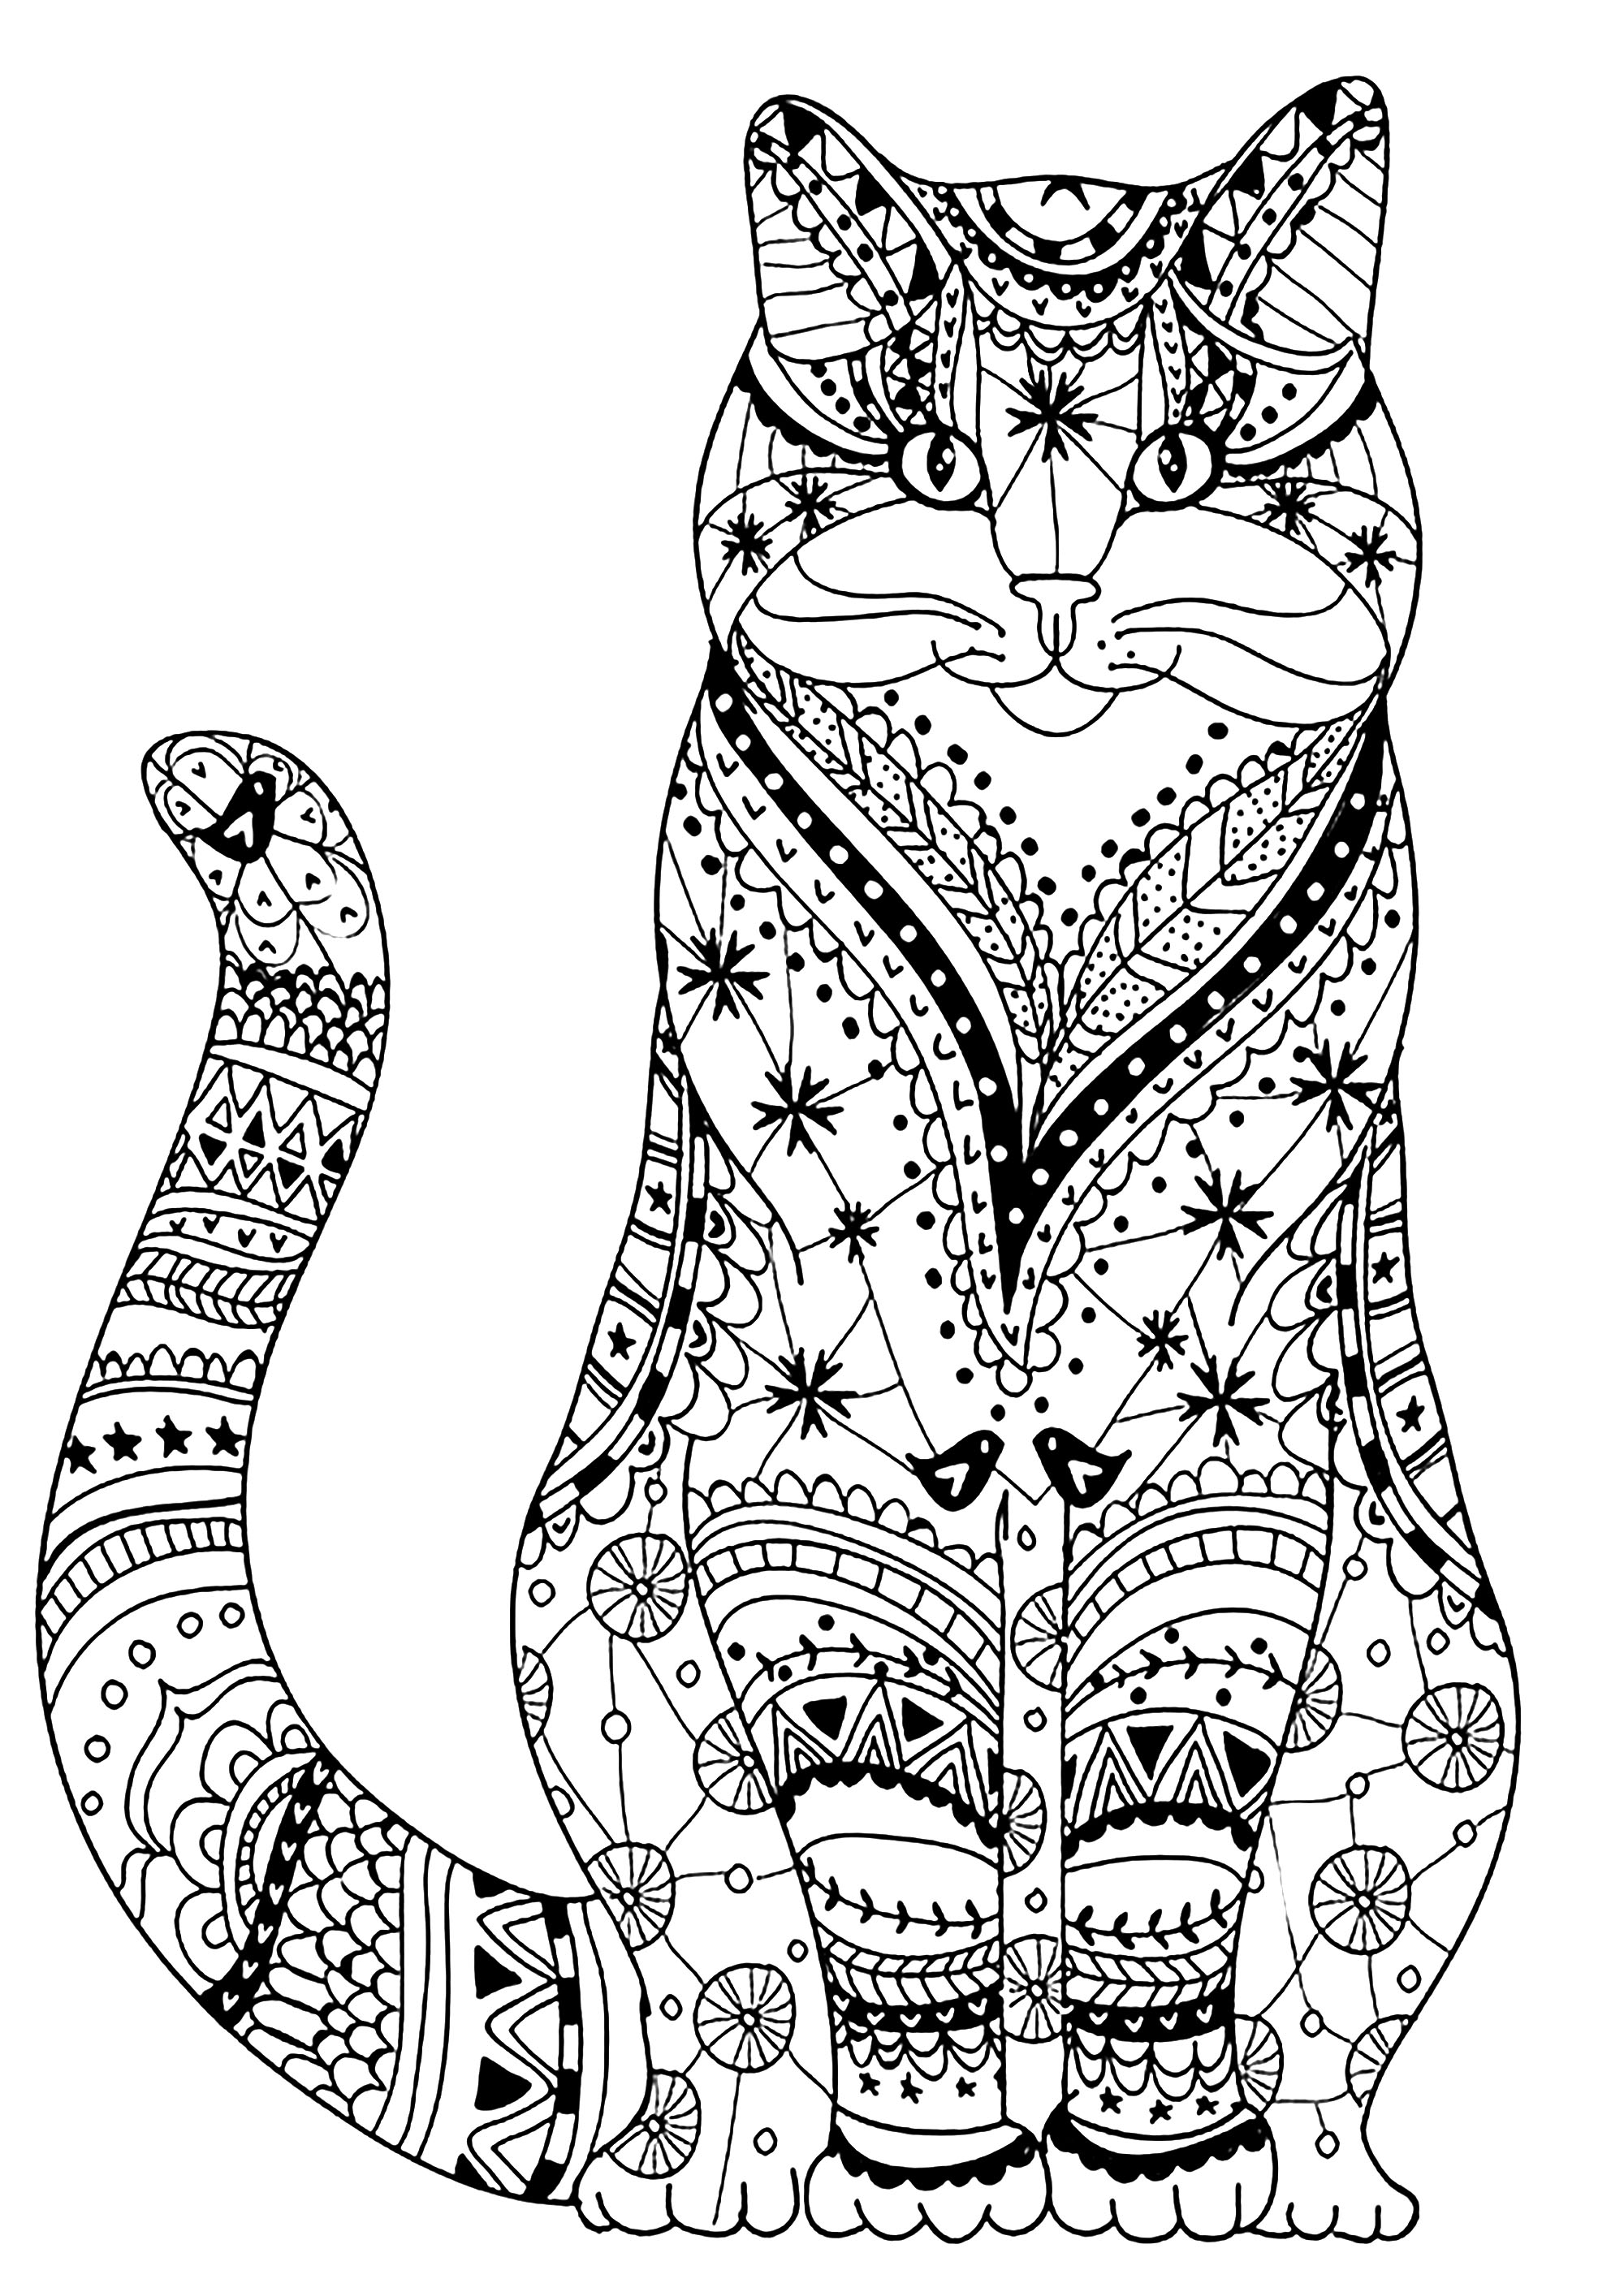 colouring pages of cats very wise cat cats adult coloring pages cats colouring of pages